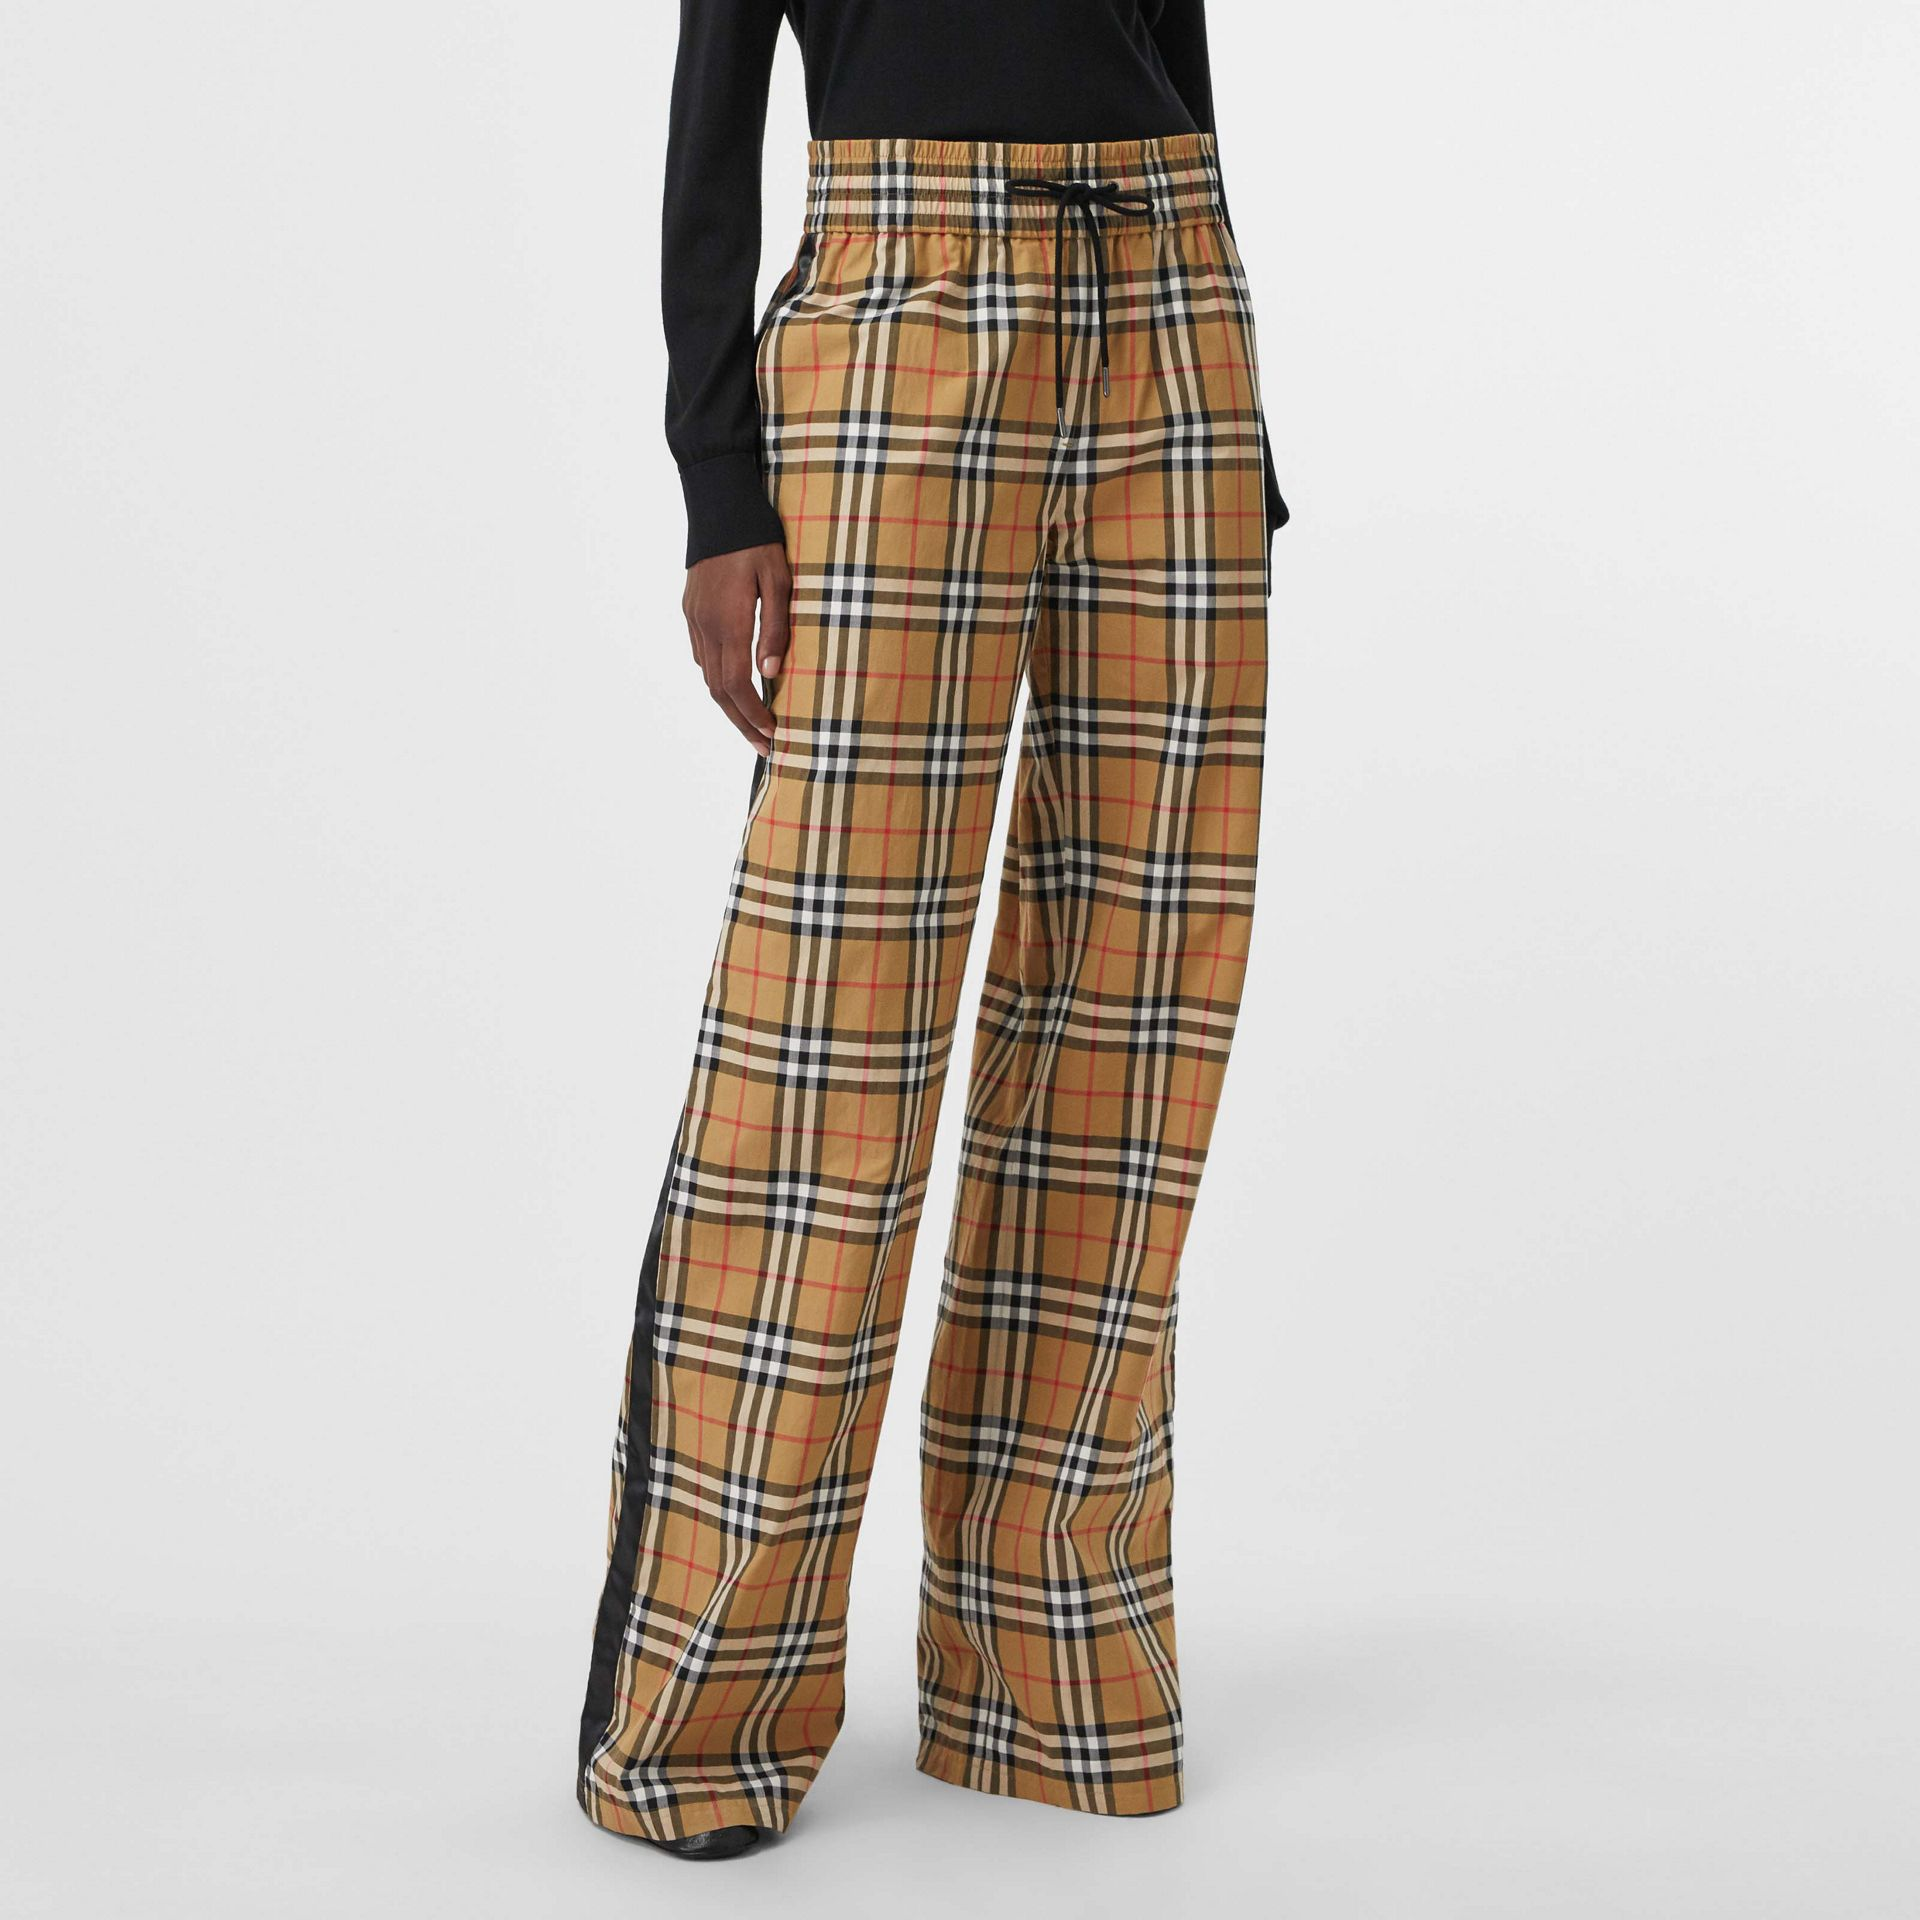 Satin Trim Vintage Check Cotton Trousers in Antique Yellow - Women | Burberry Hong Kong S.A.R - gallery image 4